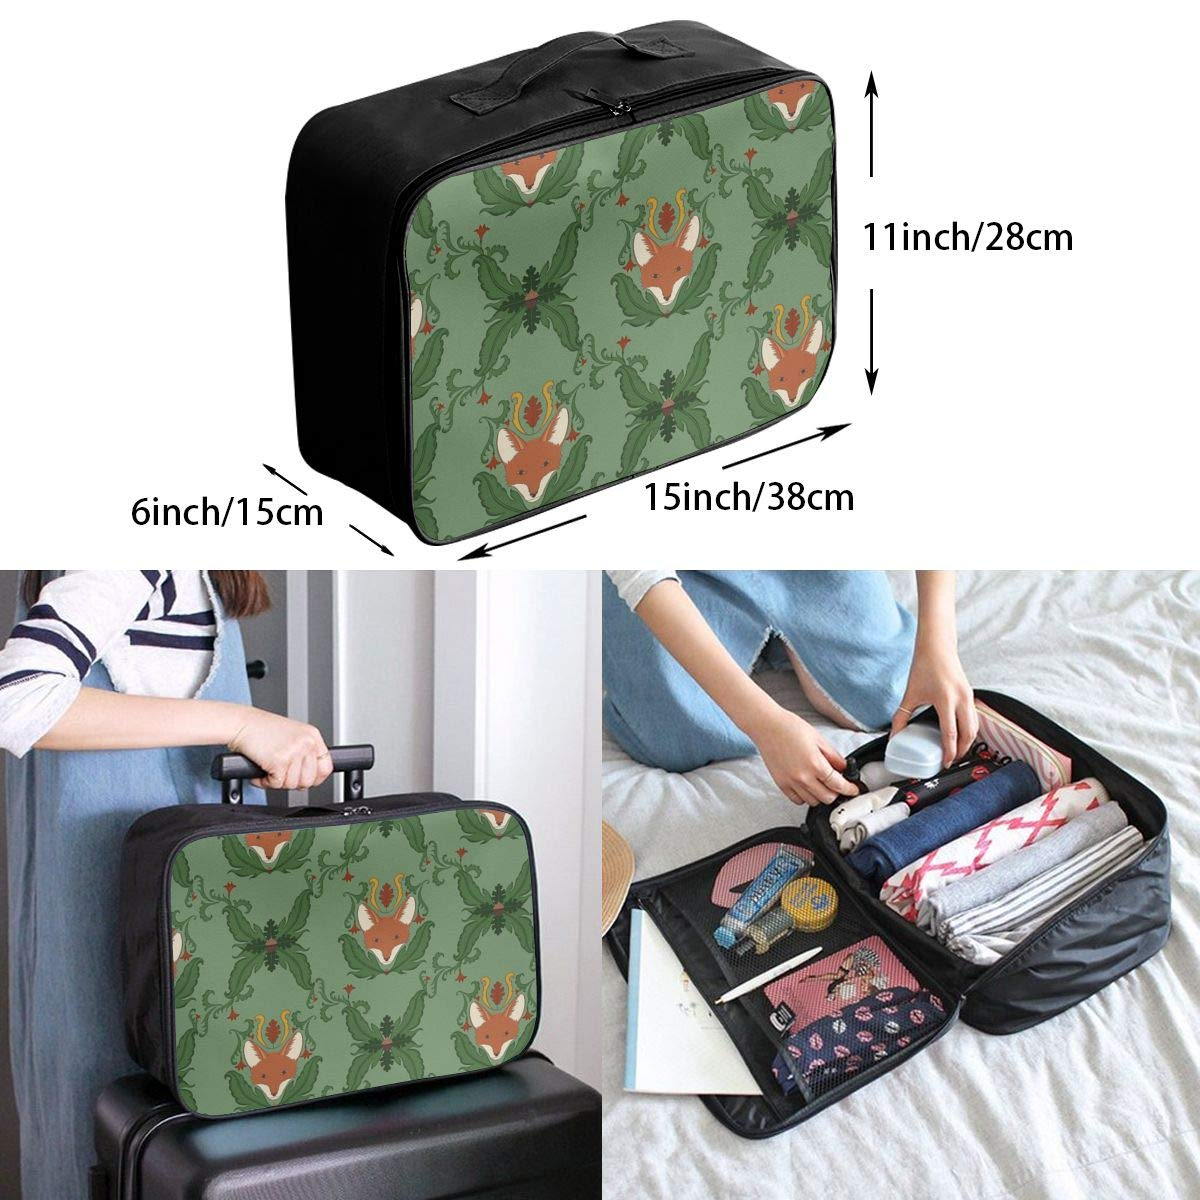 Travel Luggage Duffle Bag Lightweight Portable Handbag Tree Fox Print Large Capacity Waterproof Foldable Storage Tote